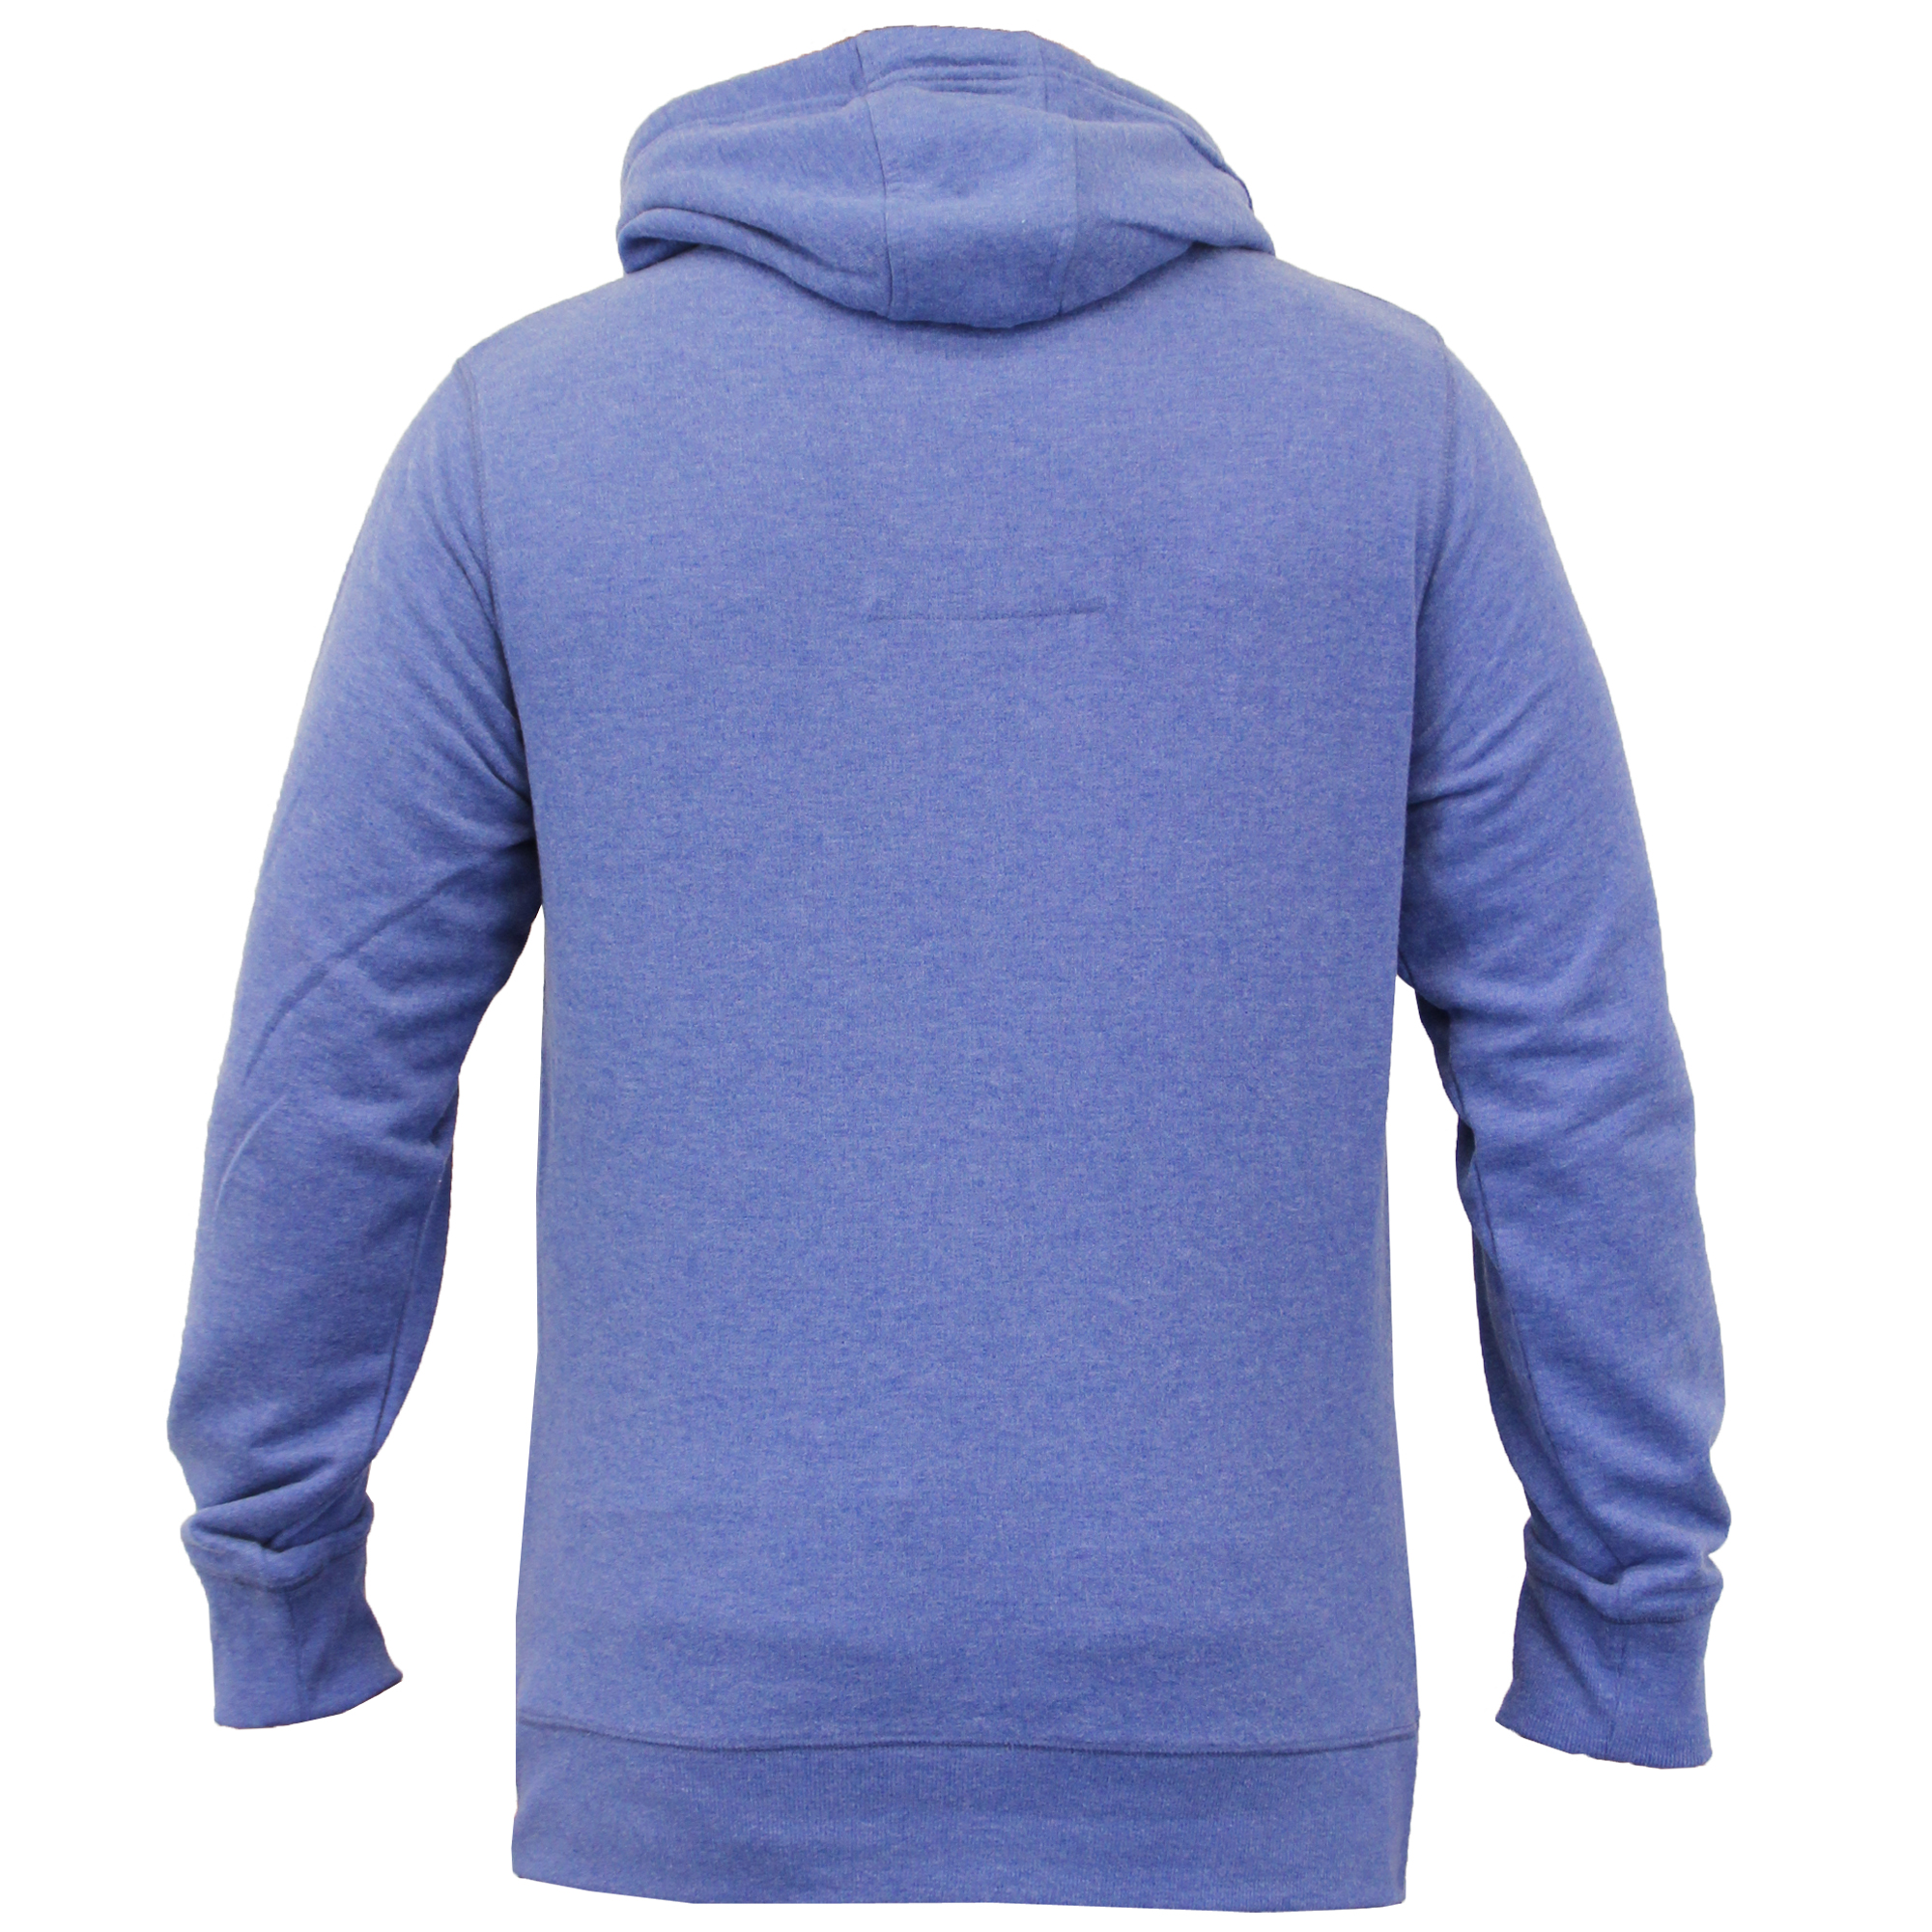 Mens-Hooded-Top-Sweatshirt-By-Tokyo-Laundry-Fleece-Lined thumbnail 3